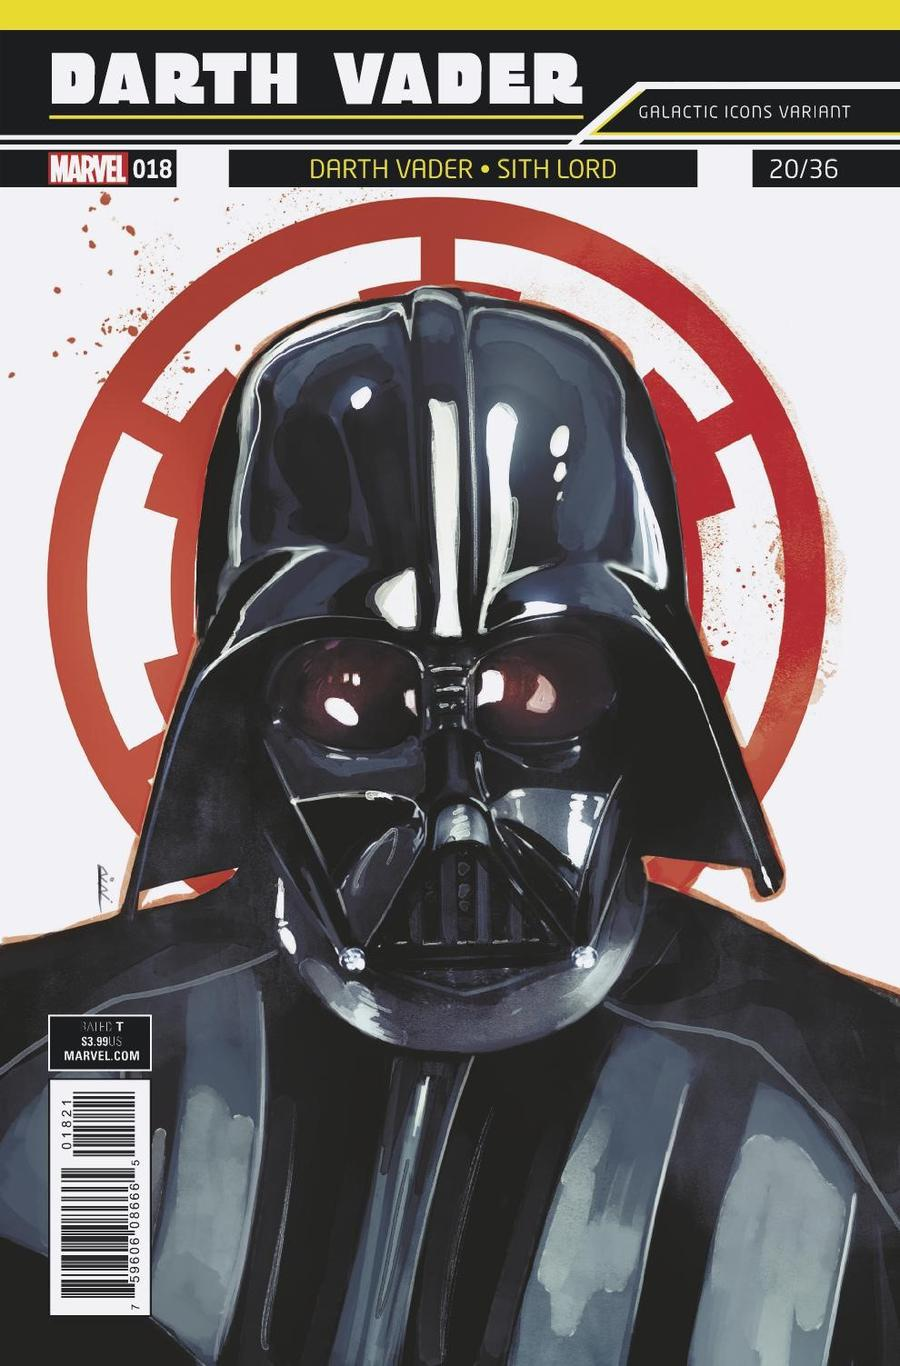 Darth Vader Vol 2 #18 Cover B Variant Rod Reis Galactic Icon Cover